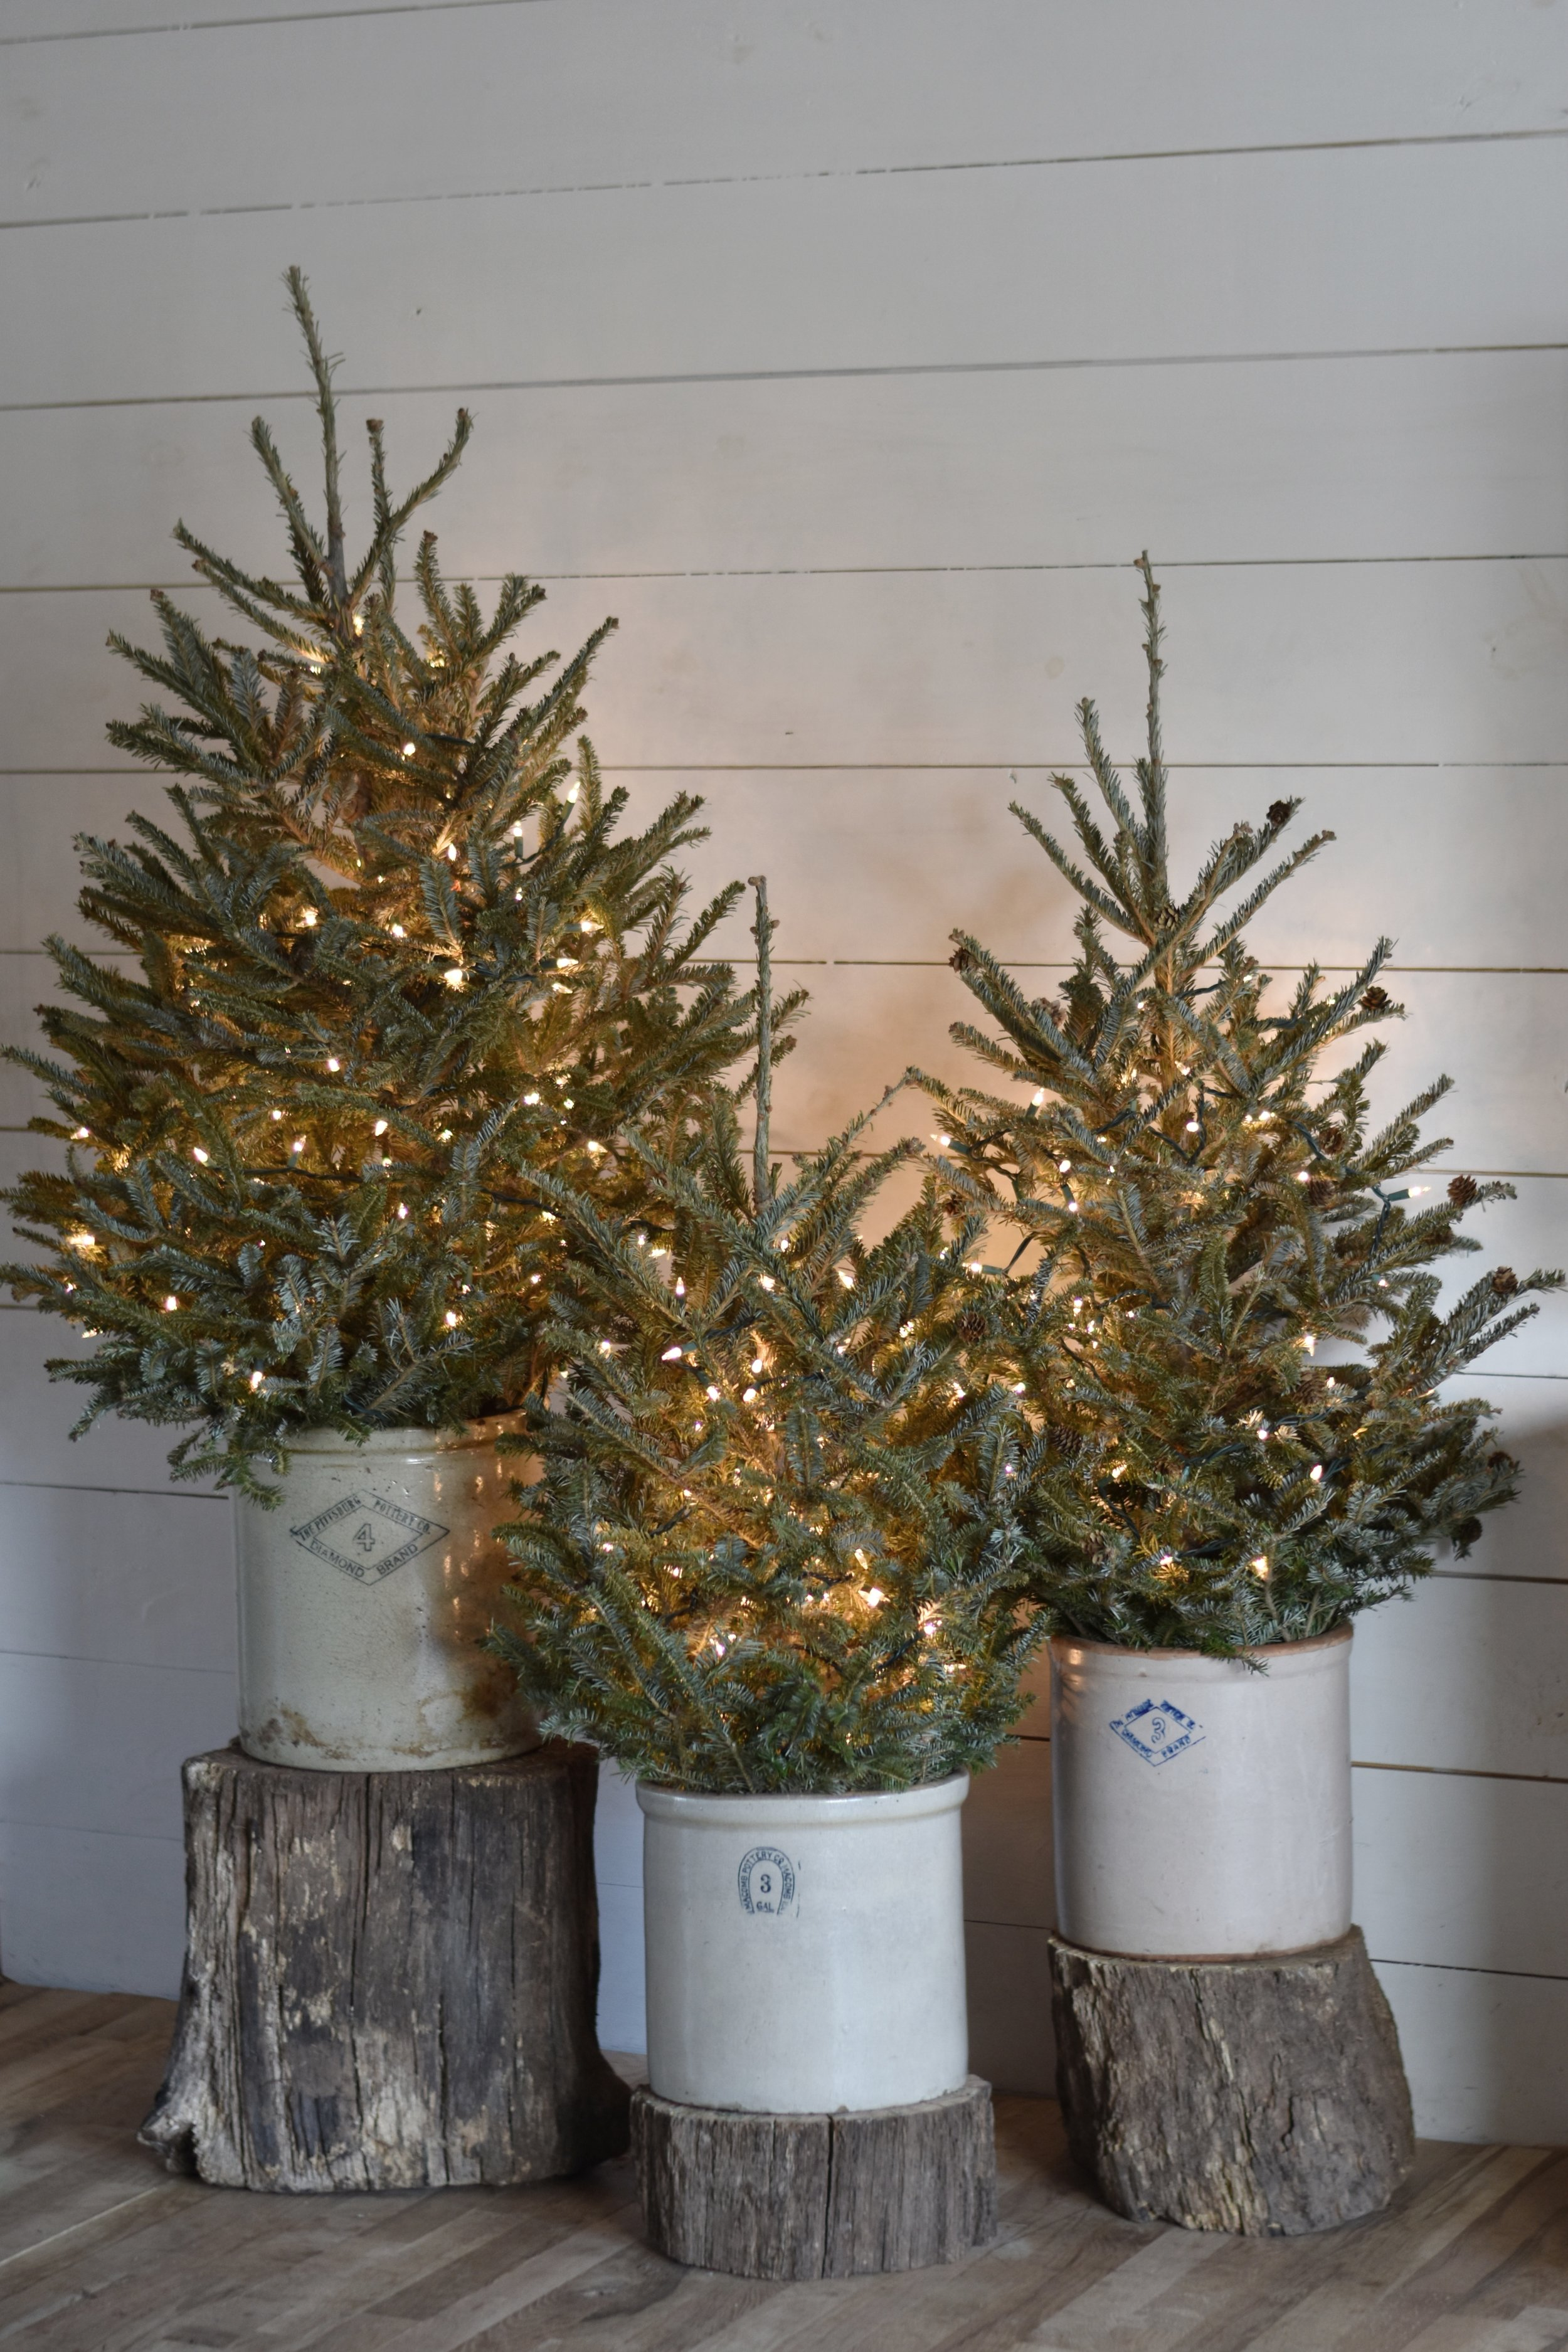 How To Decorate With Mini Christmas Trees - Cute And ...